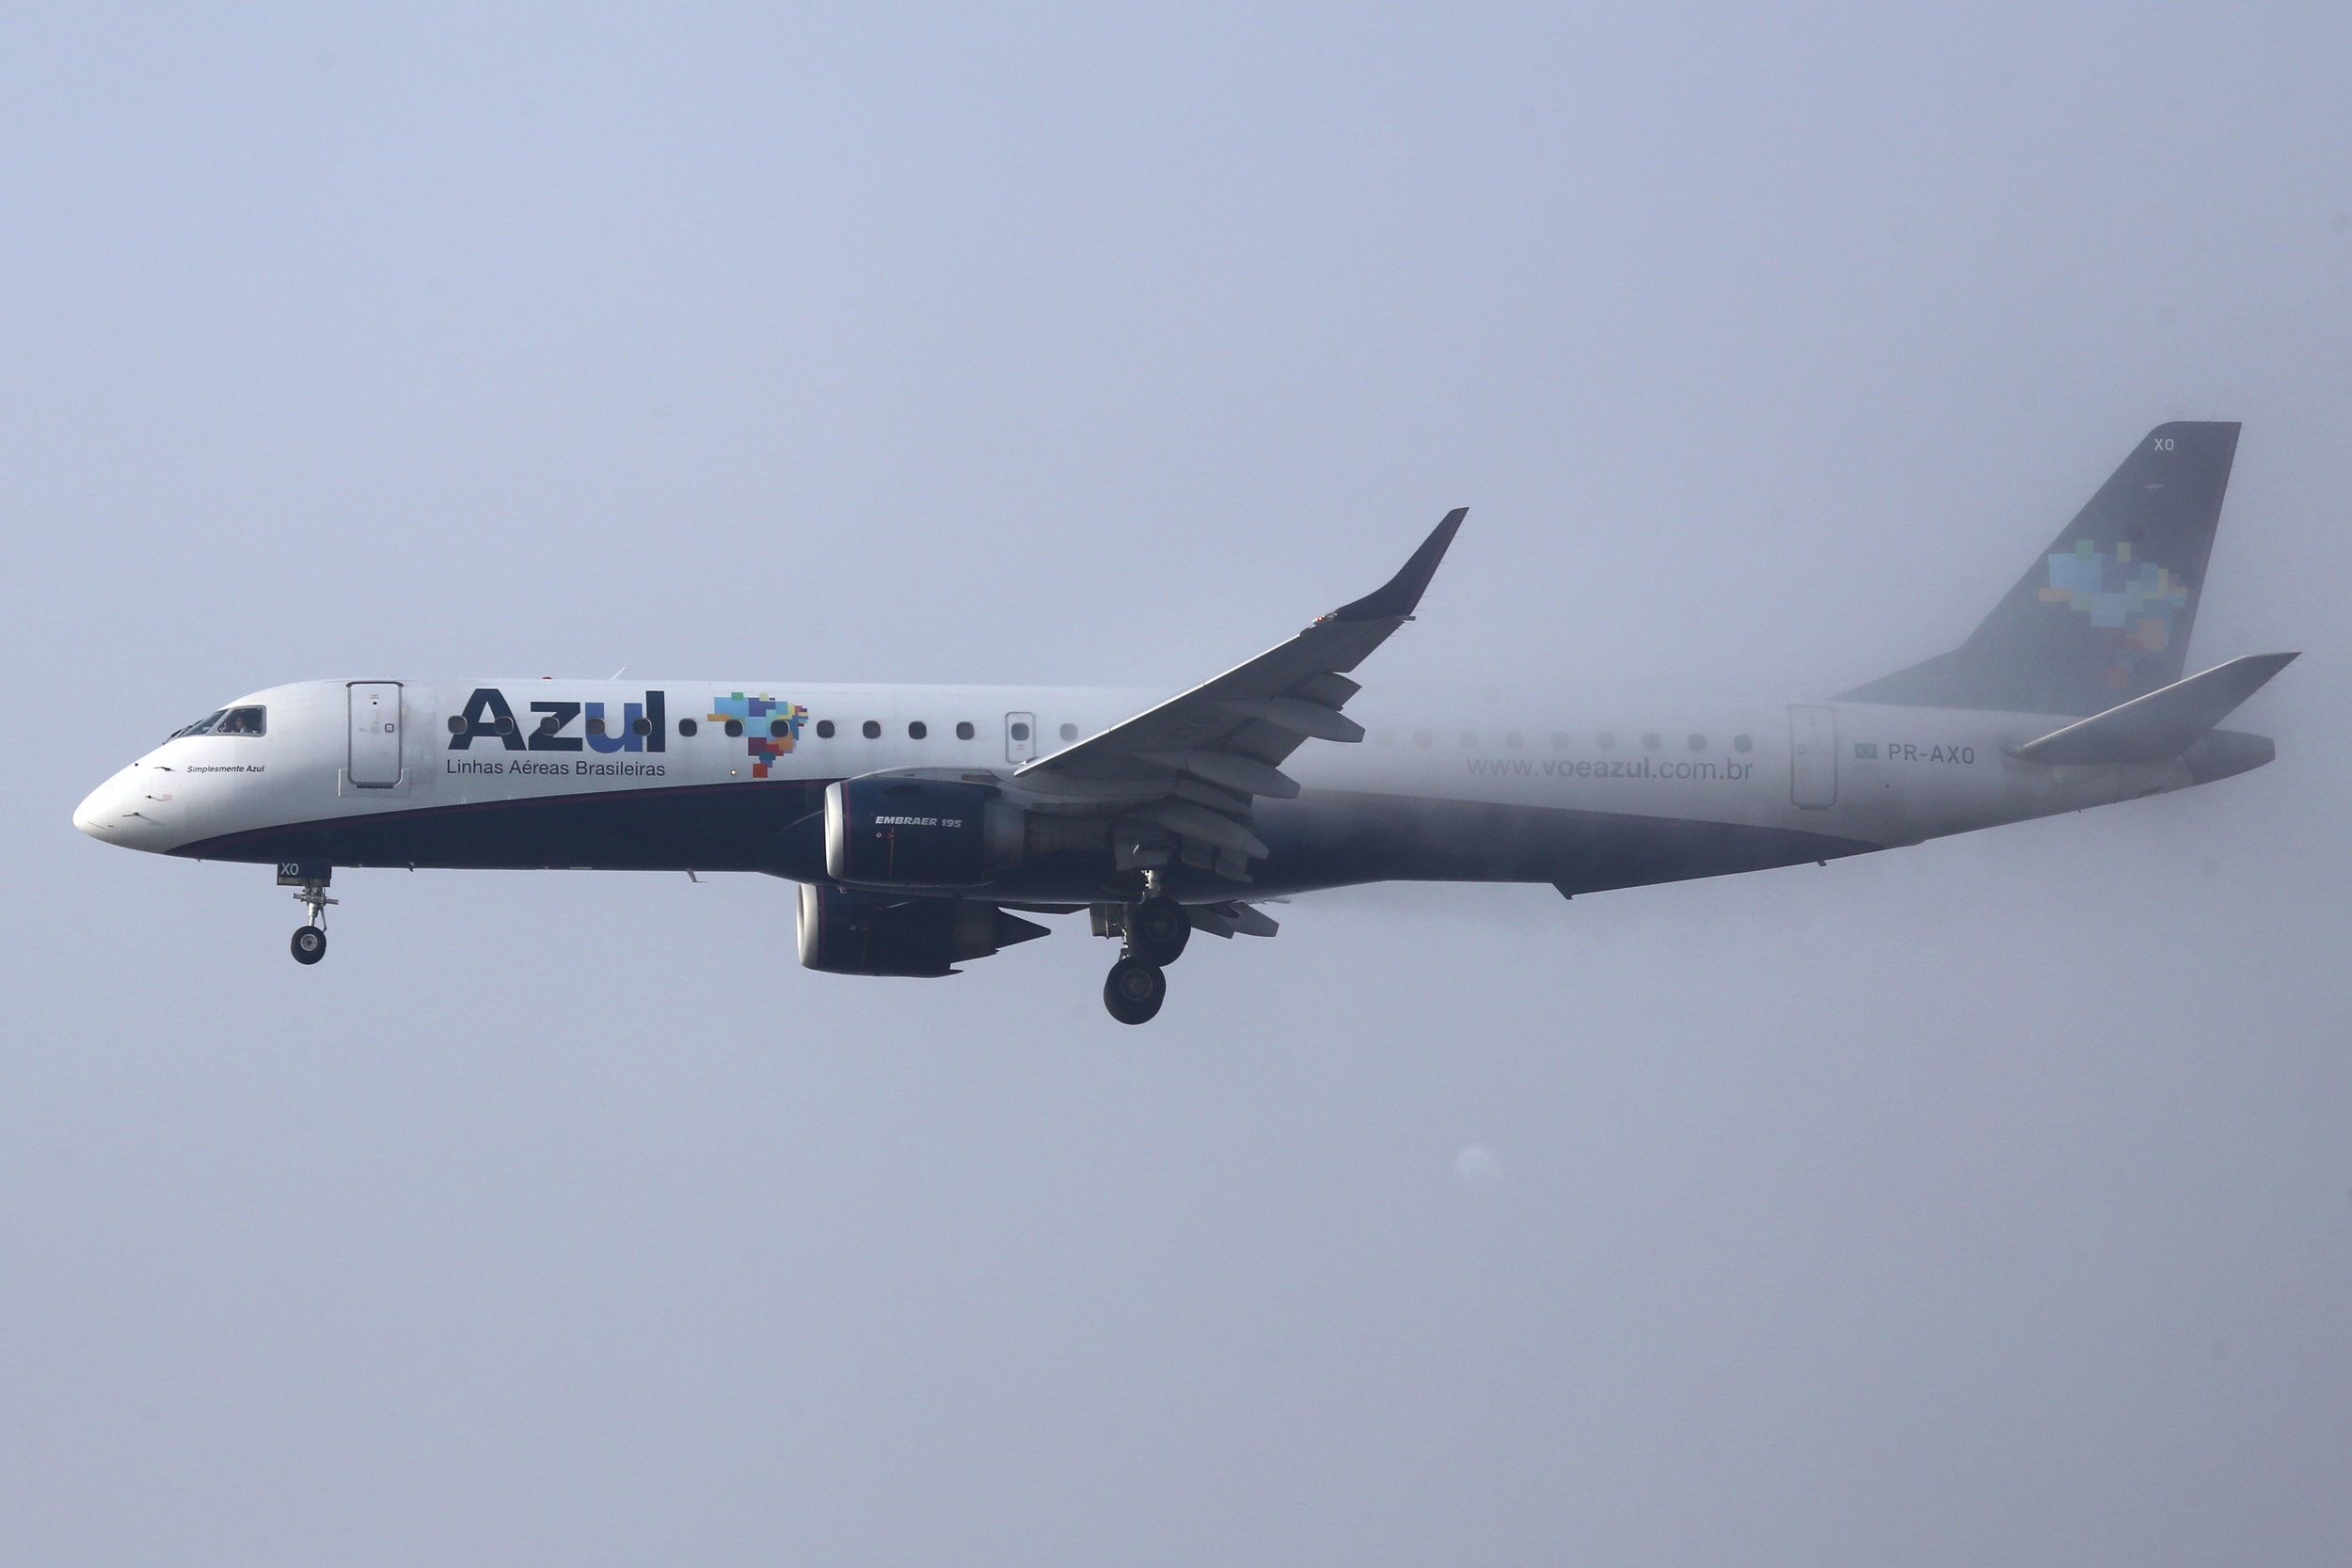 PR-AXO Azul- Linhas Aeras Brasileiras Embraer 195LR taken from the roof of the Matiz Hotel at Sao Paulo Guarulhos Airport 27th April 2019 on a foggy morning by John Wood